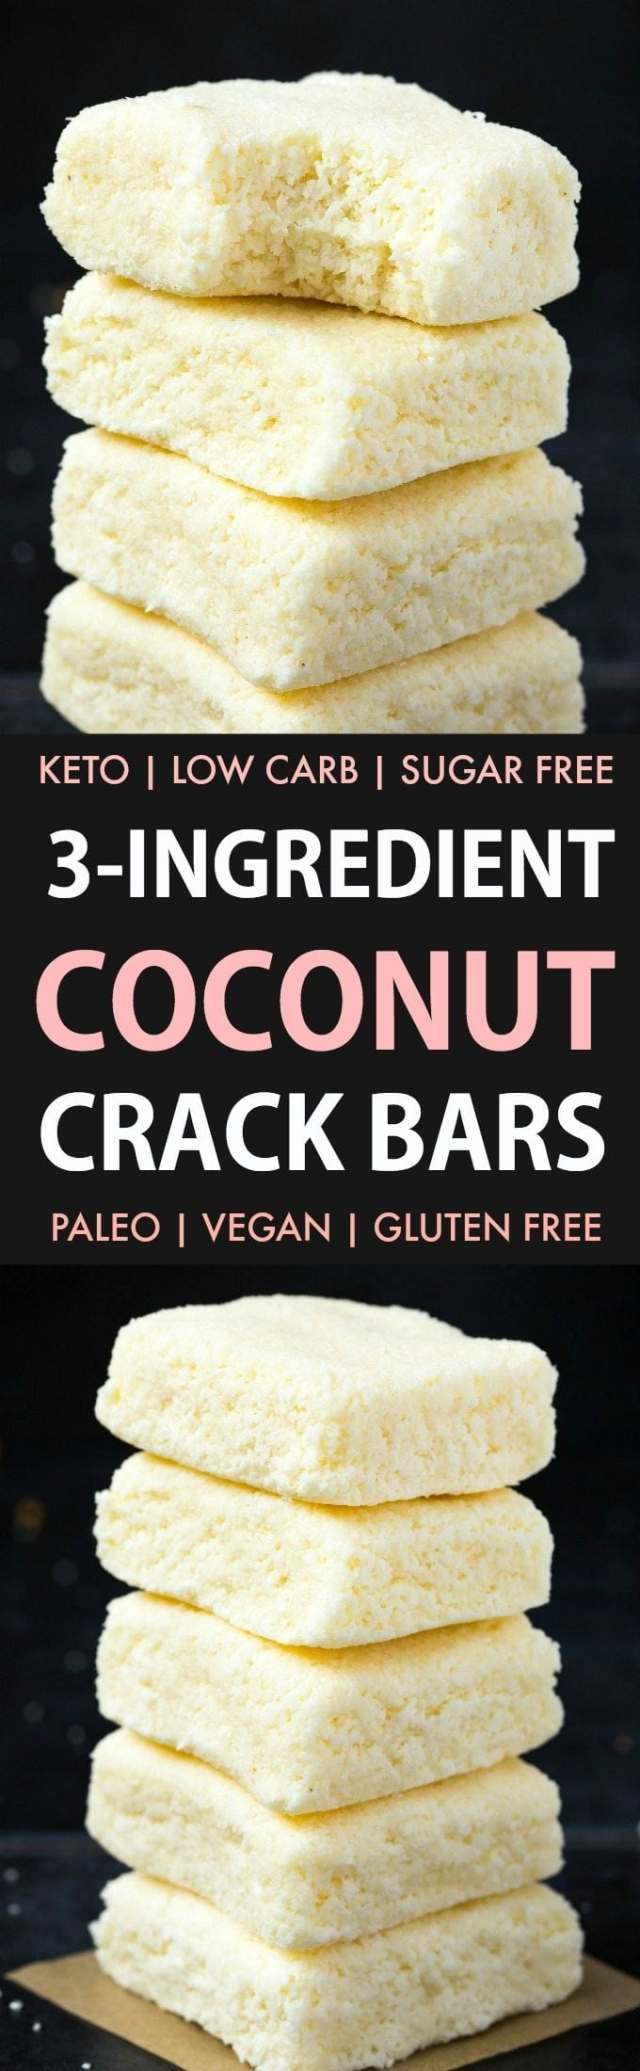 3-Ingredient No Bake Coconut Crack Bars in a collage